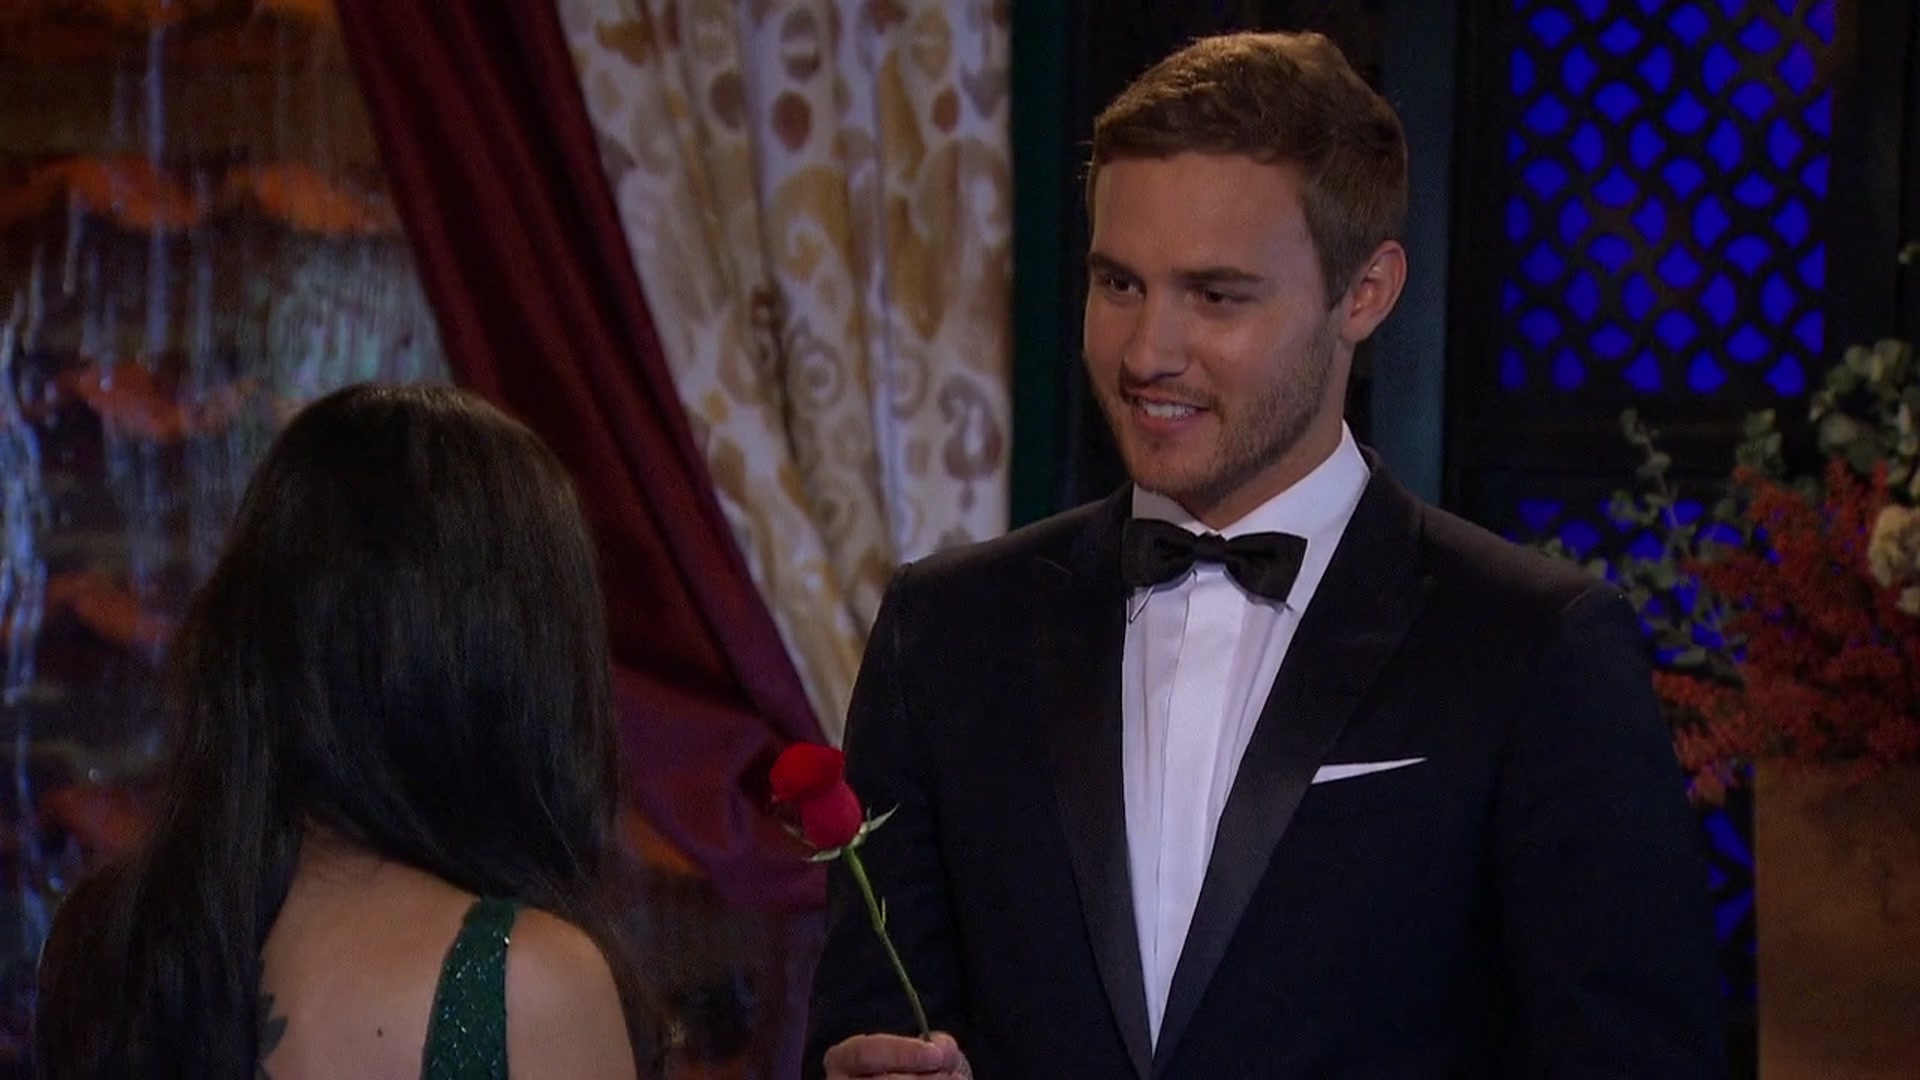 the bachelor season 17 full episodes online free